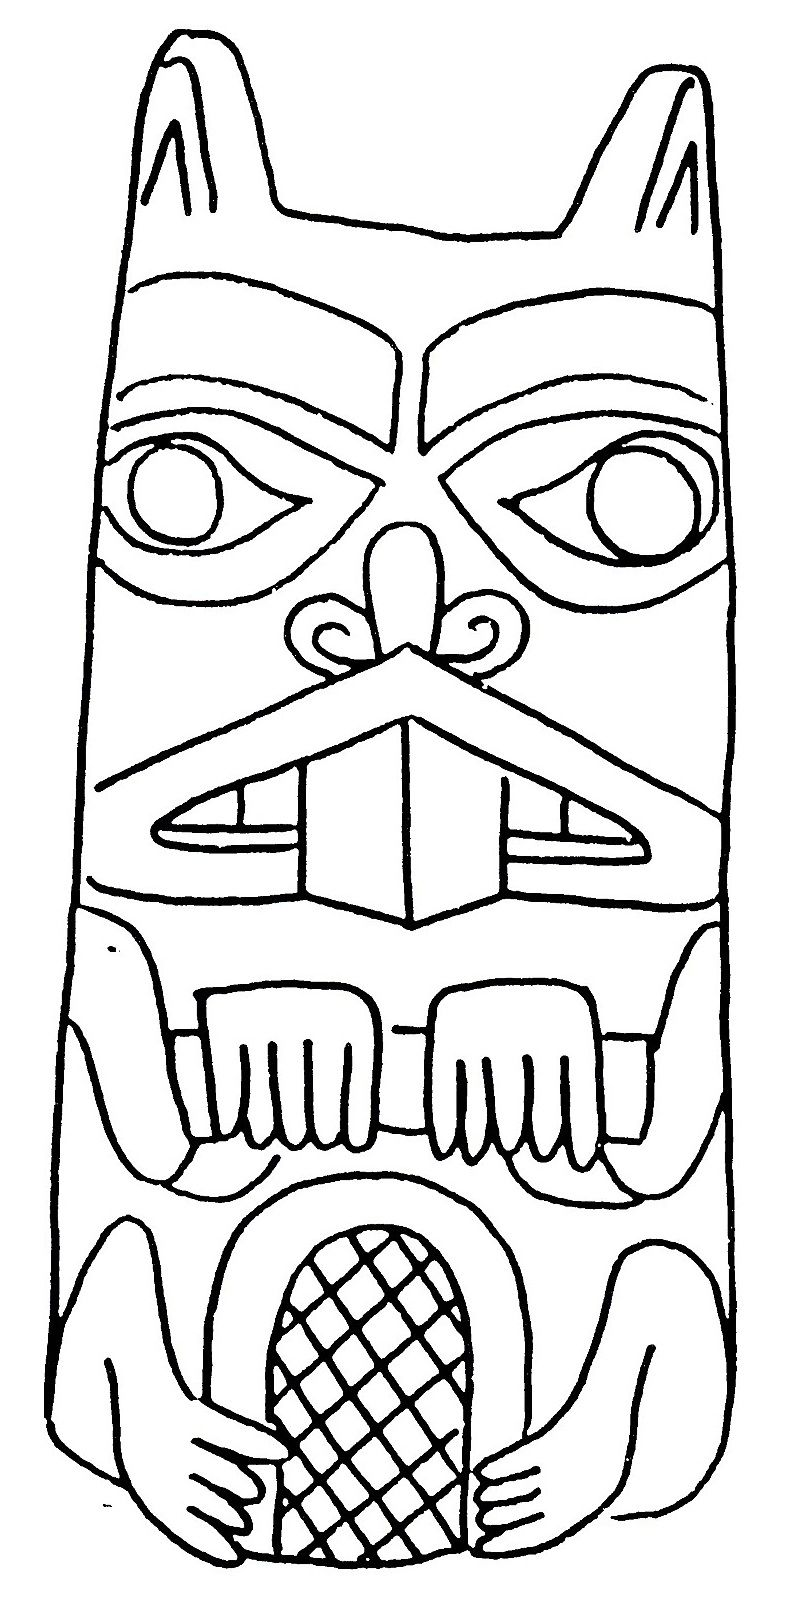 Coloring Beaver totem - Coloring pages | carving | Pinterest